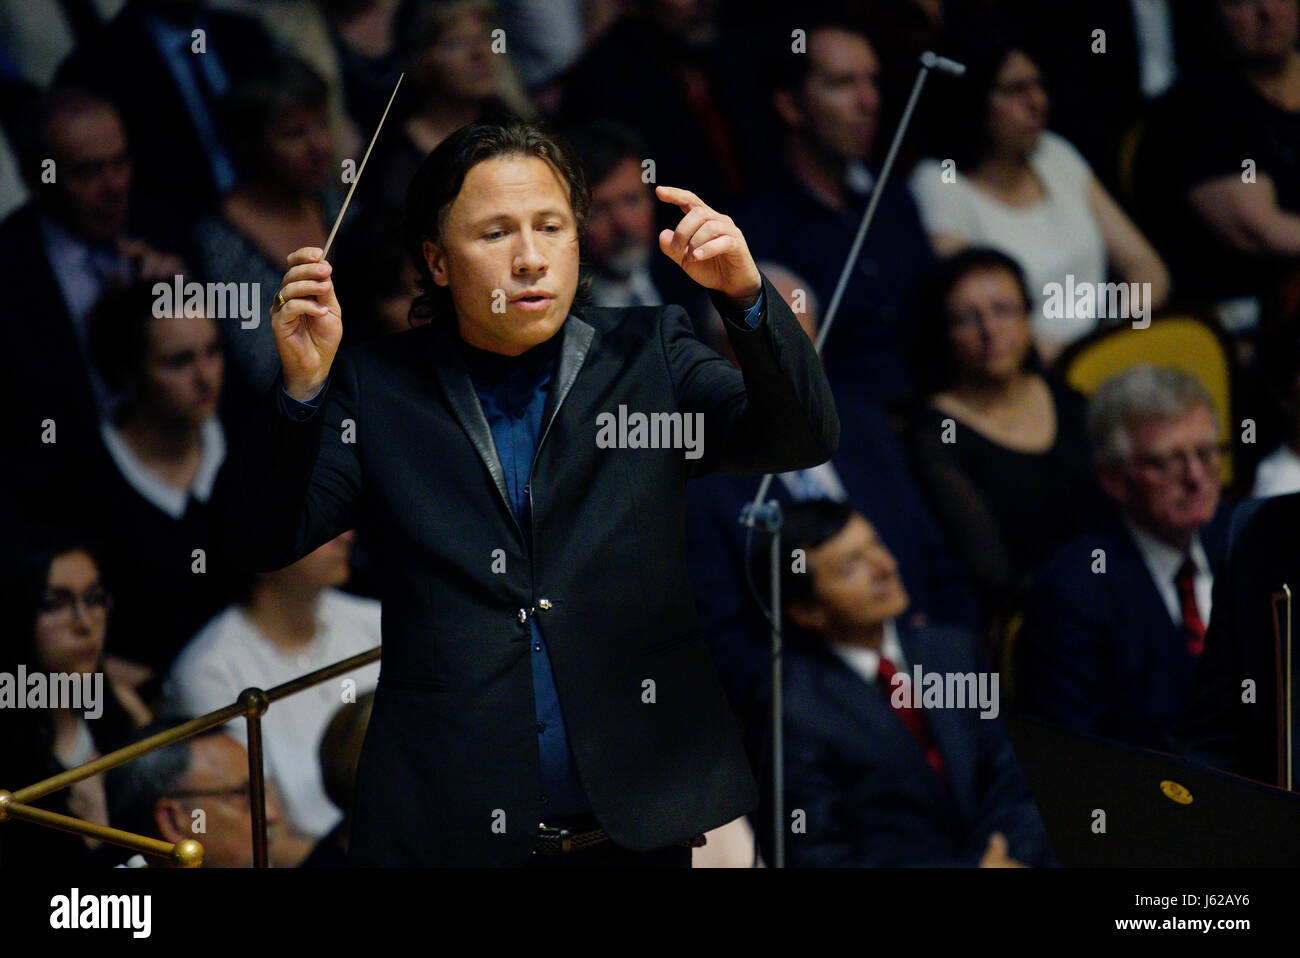 Estonian conductor Kristjan Jarvi  conducts the Czech Philharmonic within Prague Spring music festival in Prague, Stock Photo